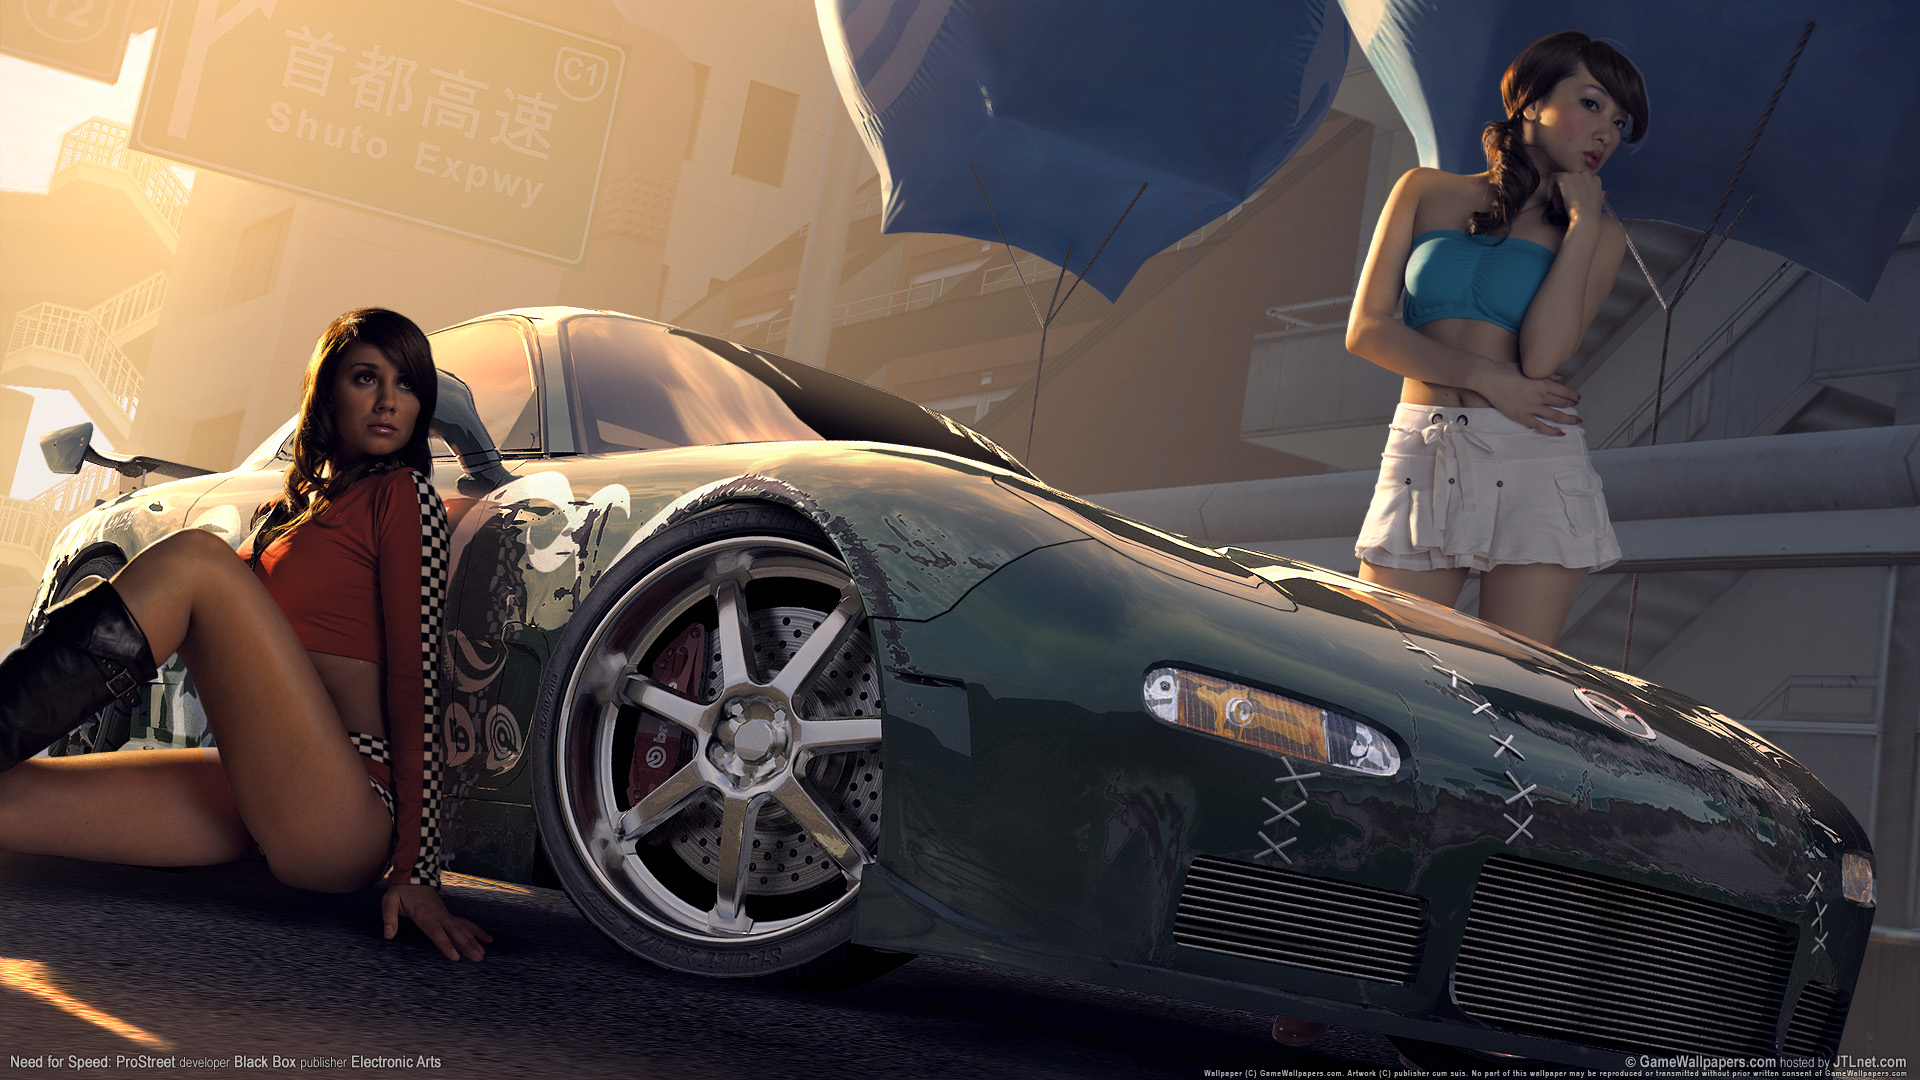 'Need For Speed' the movie is based on the video game.